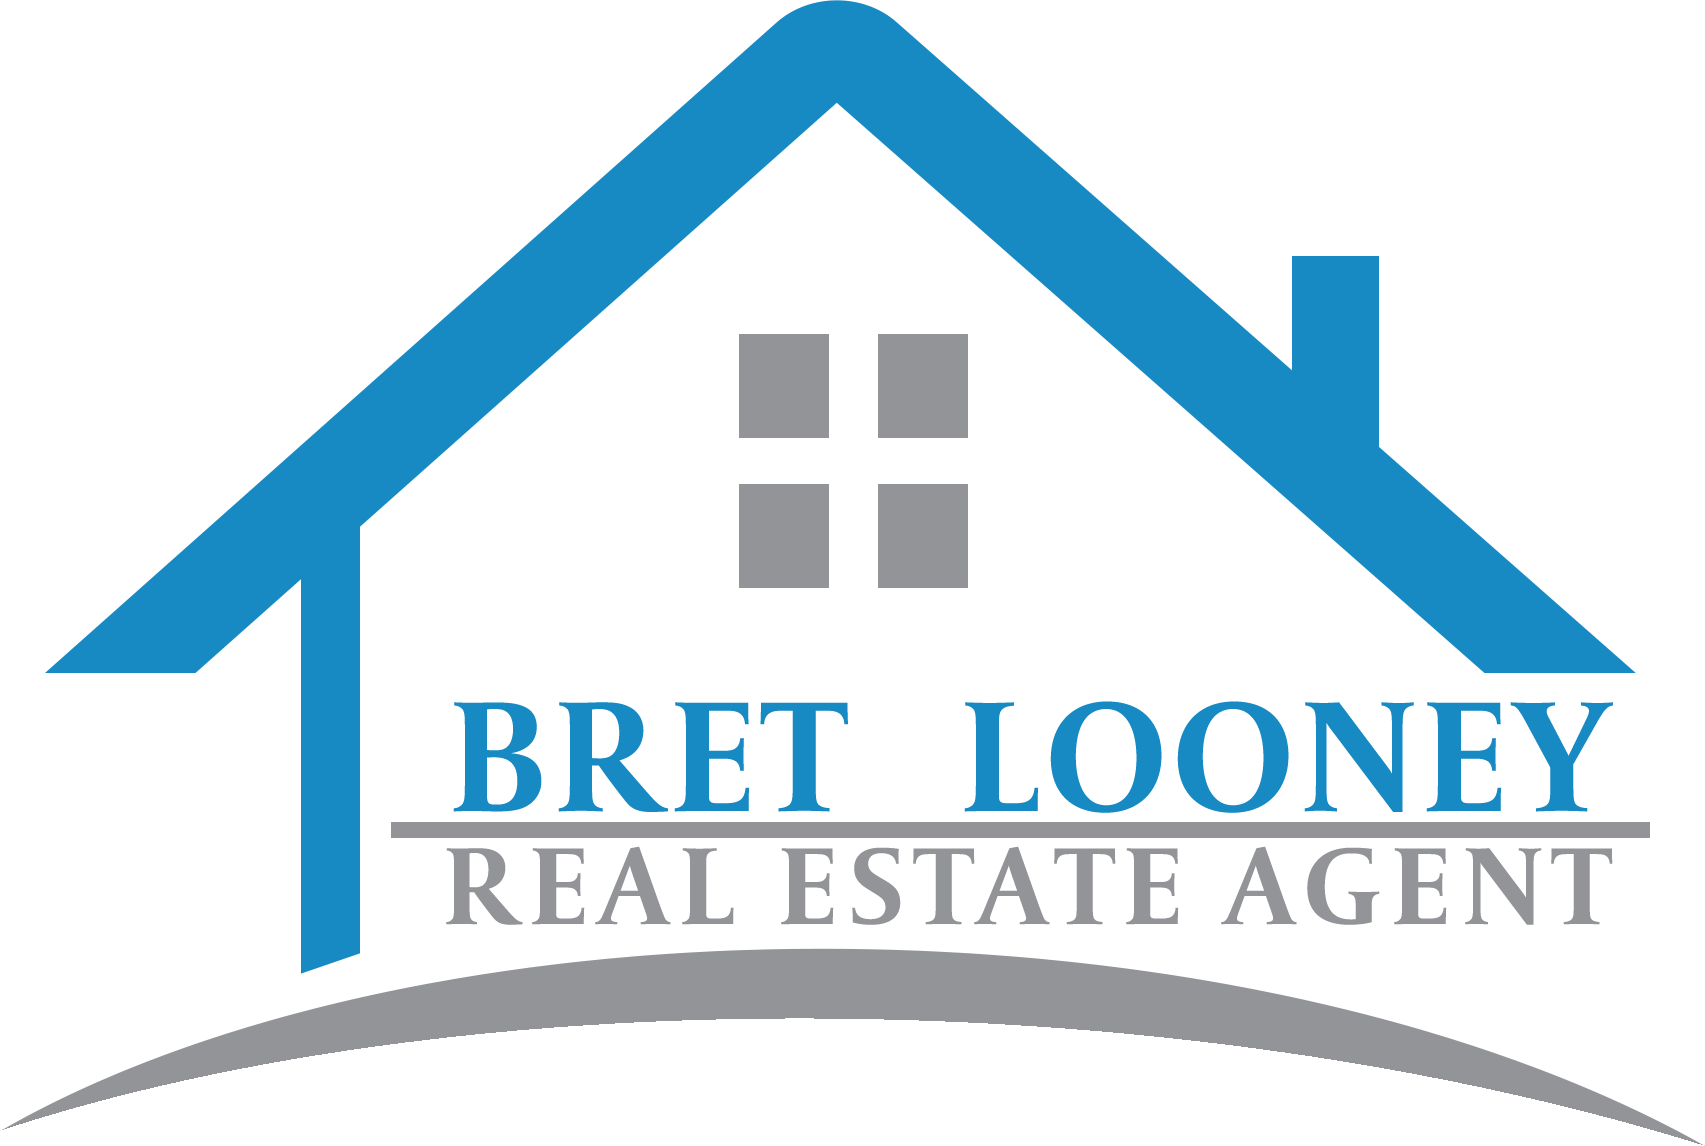 Bret Looney Real Estate Agent